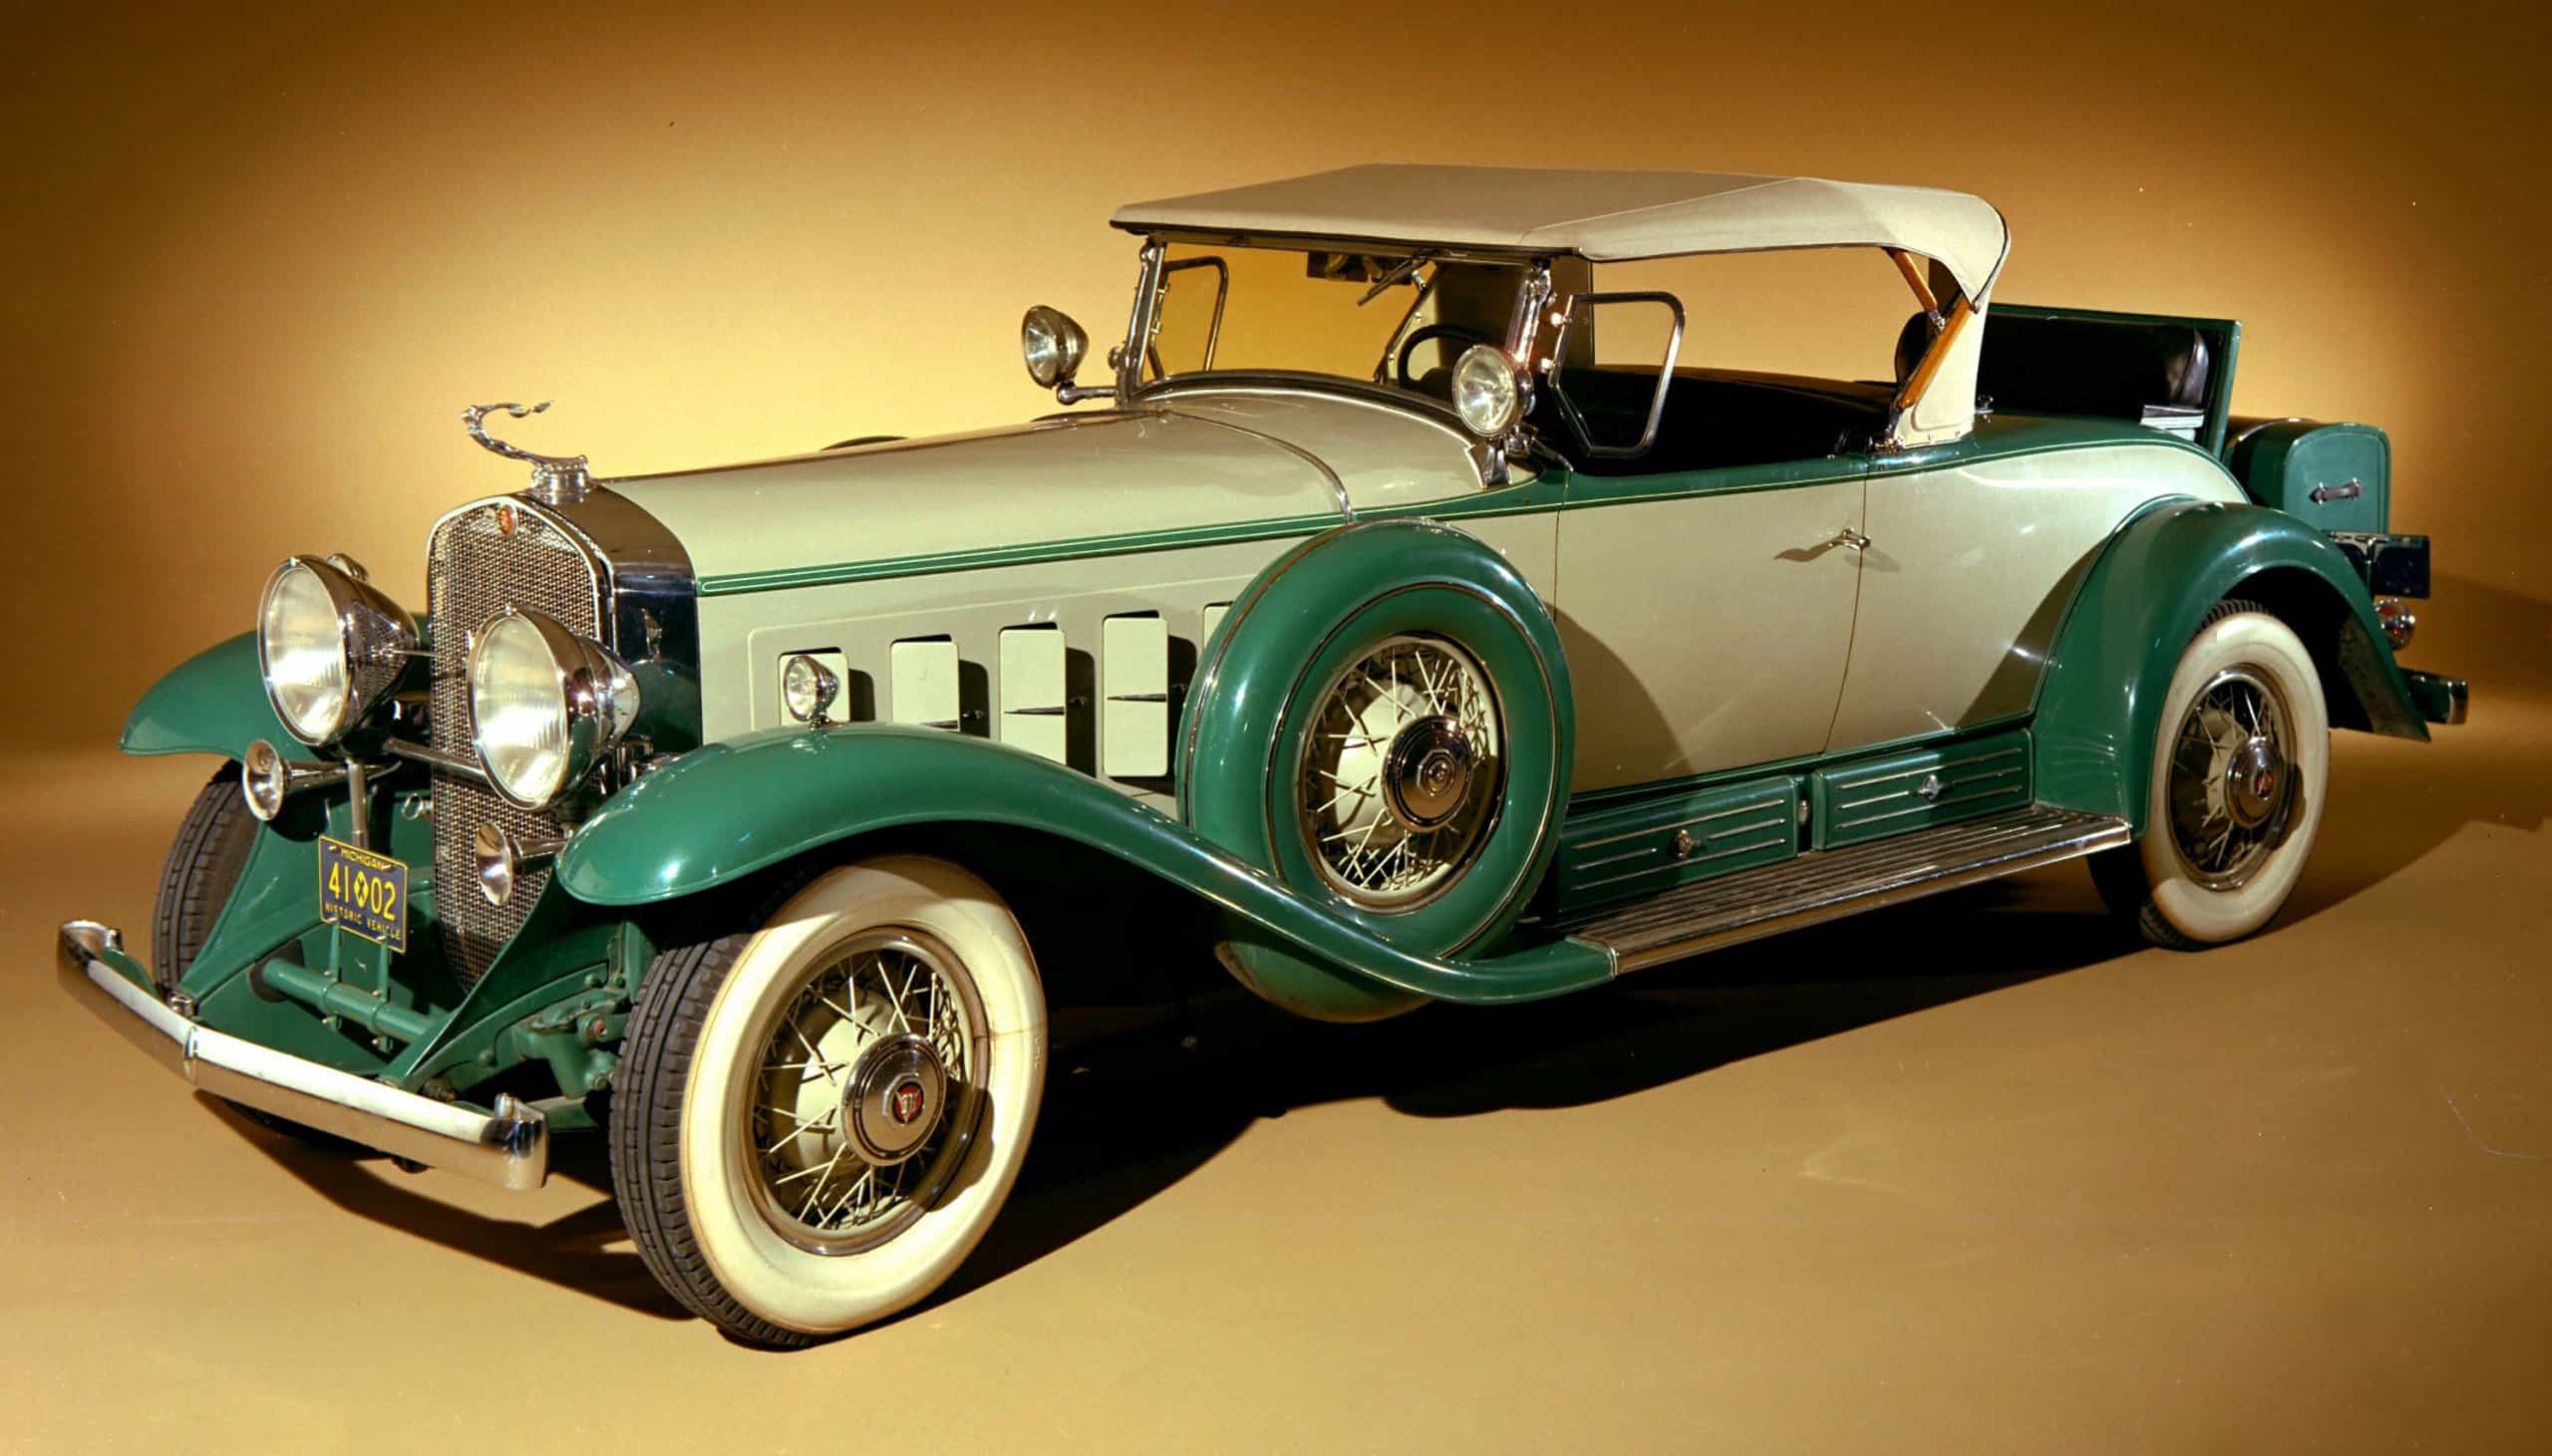 Cadillac V16, The other vehicle powered by Cadillac's V16 engine, ClassicCars.com Journal